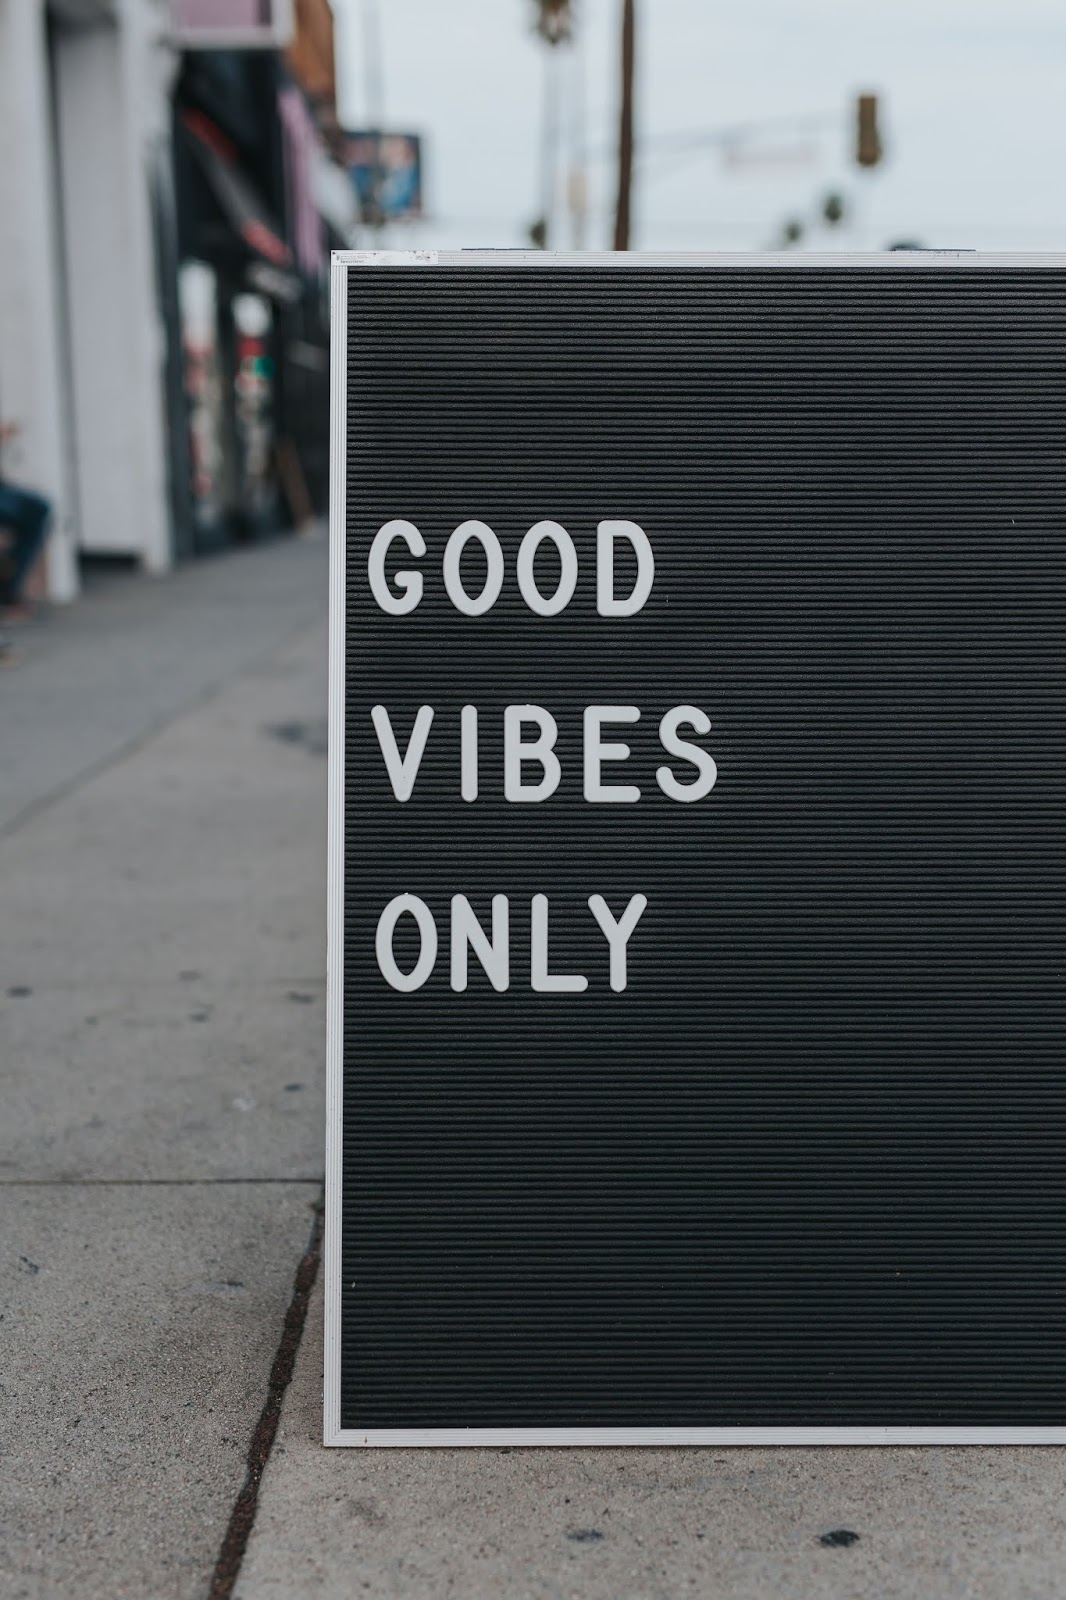 good vibes only street sign